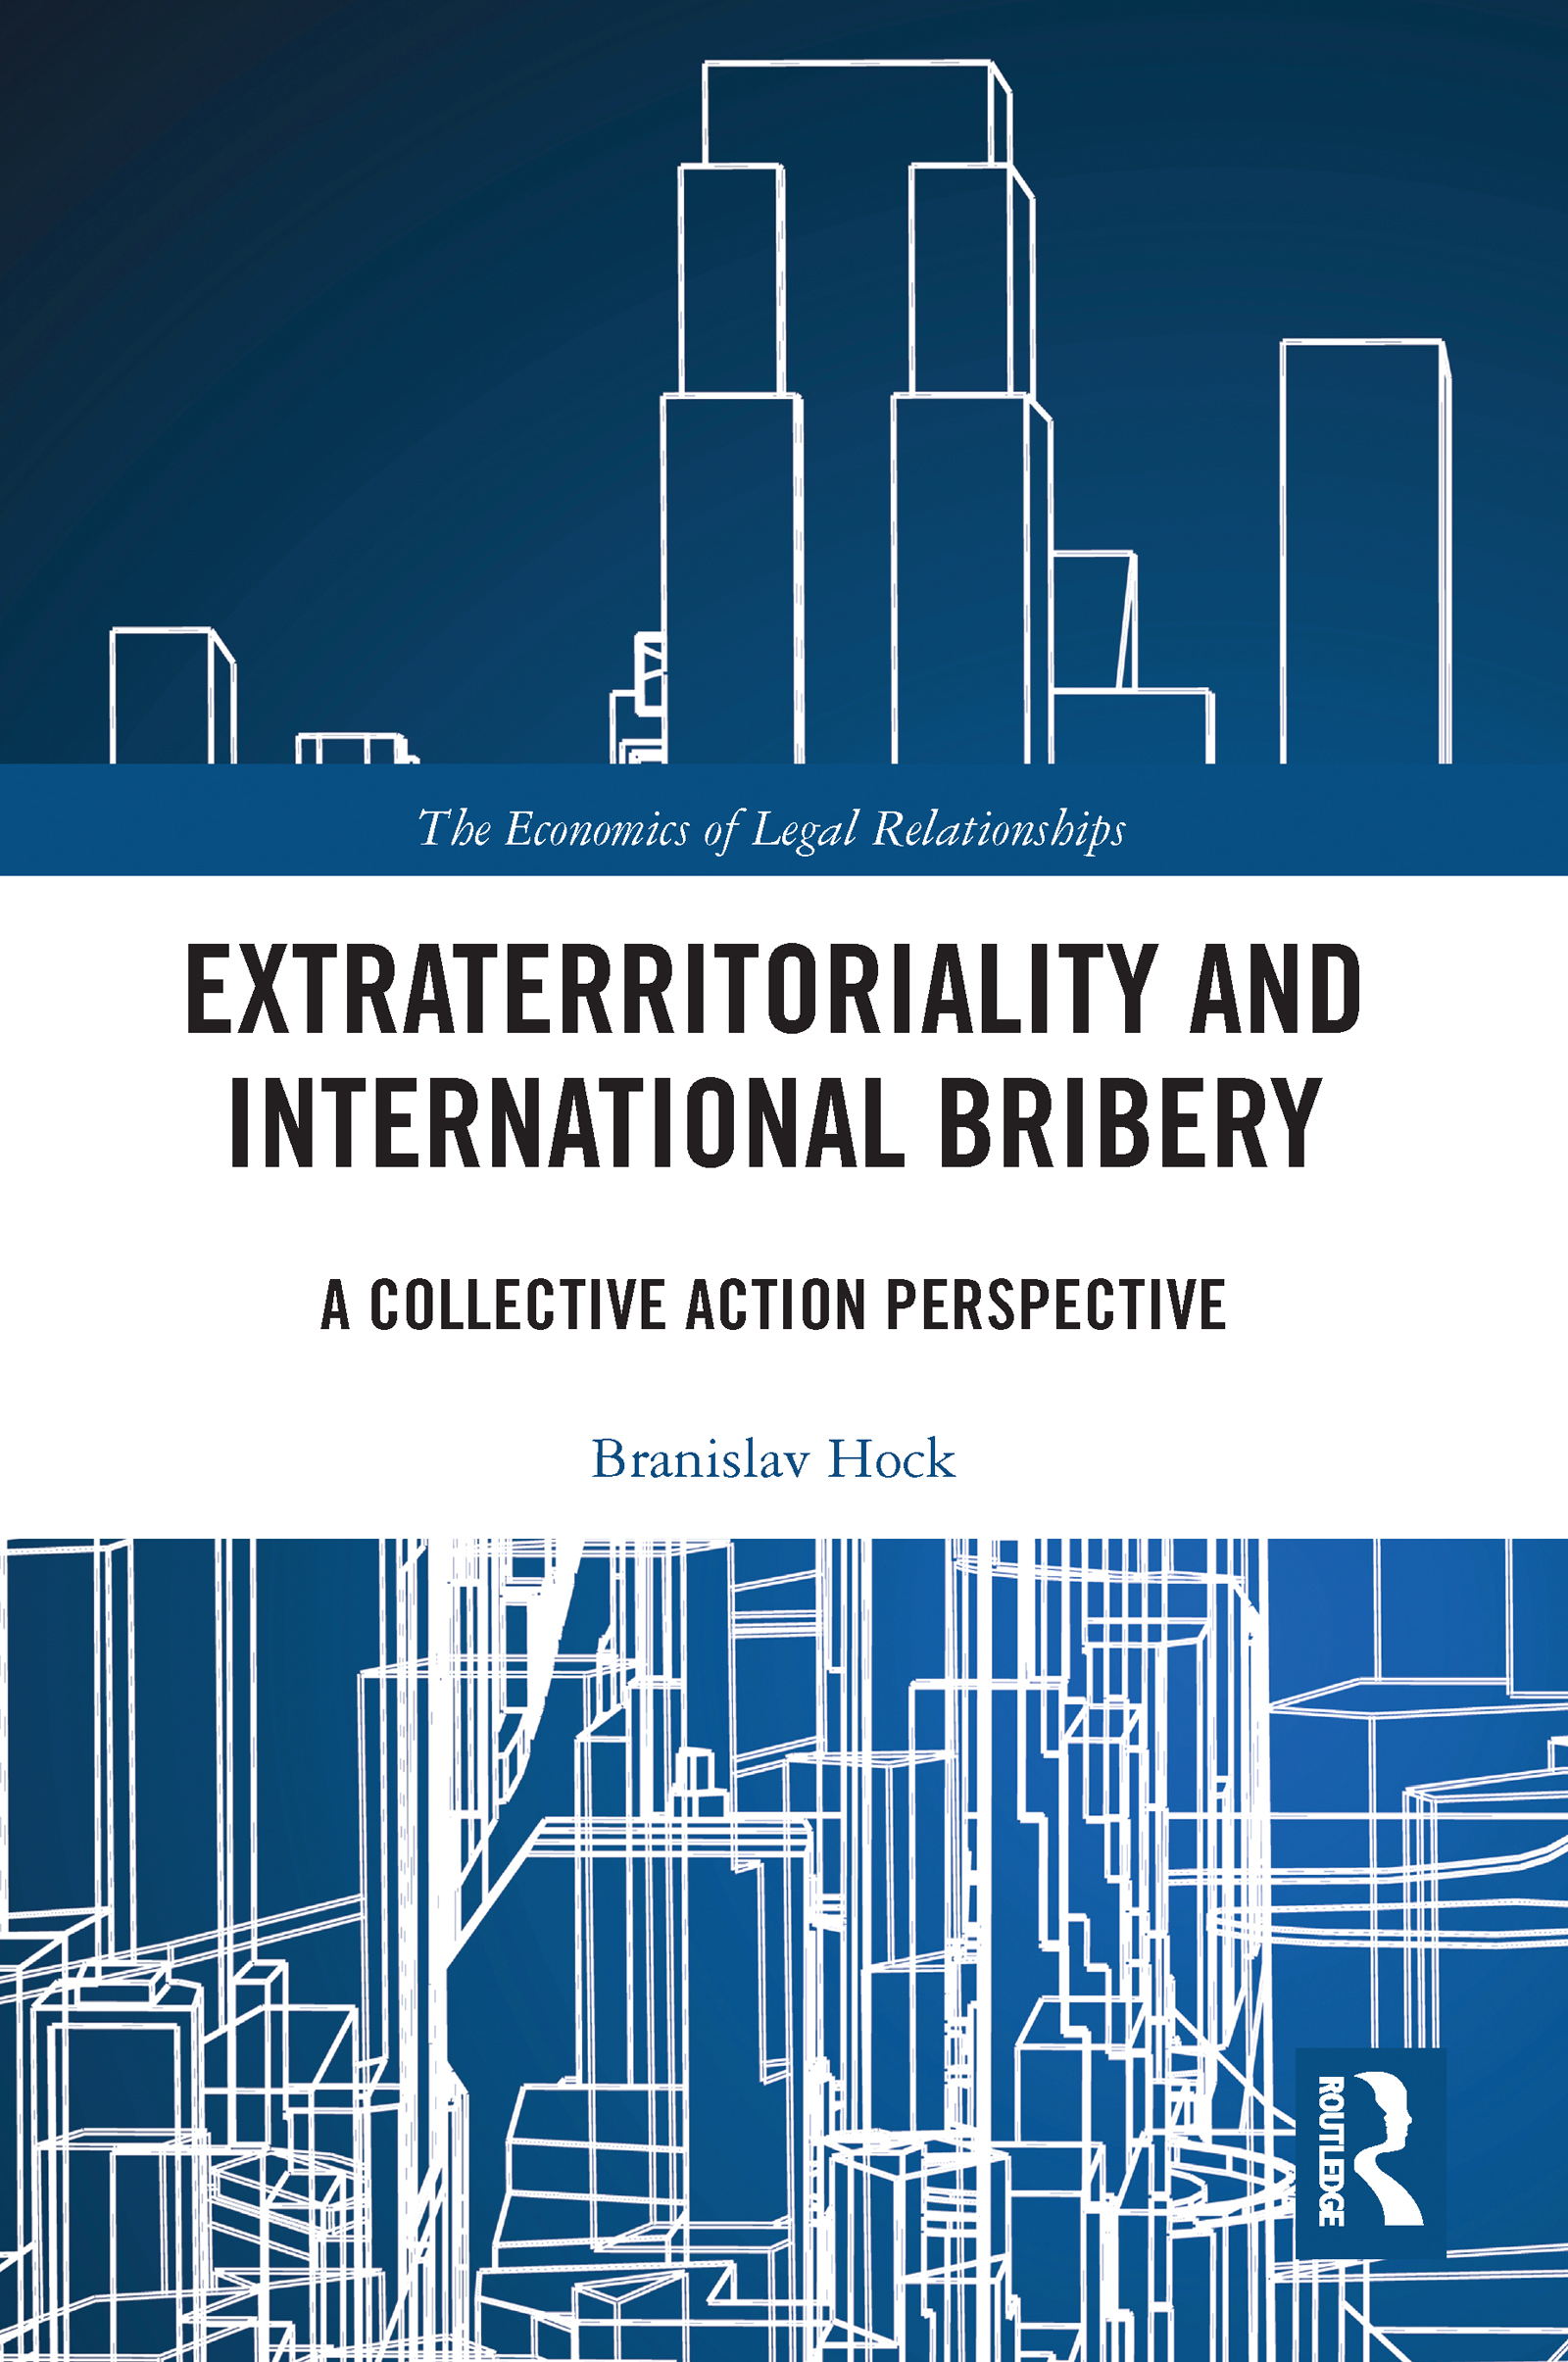 Extraterritoriality and International Bribery